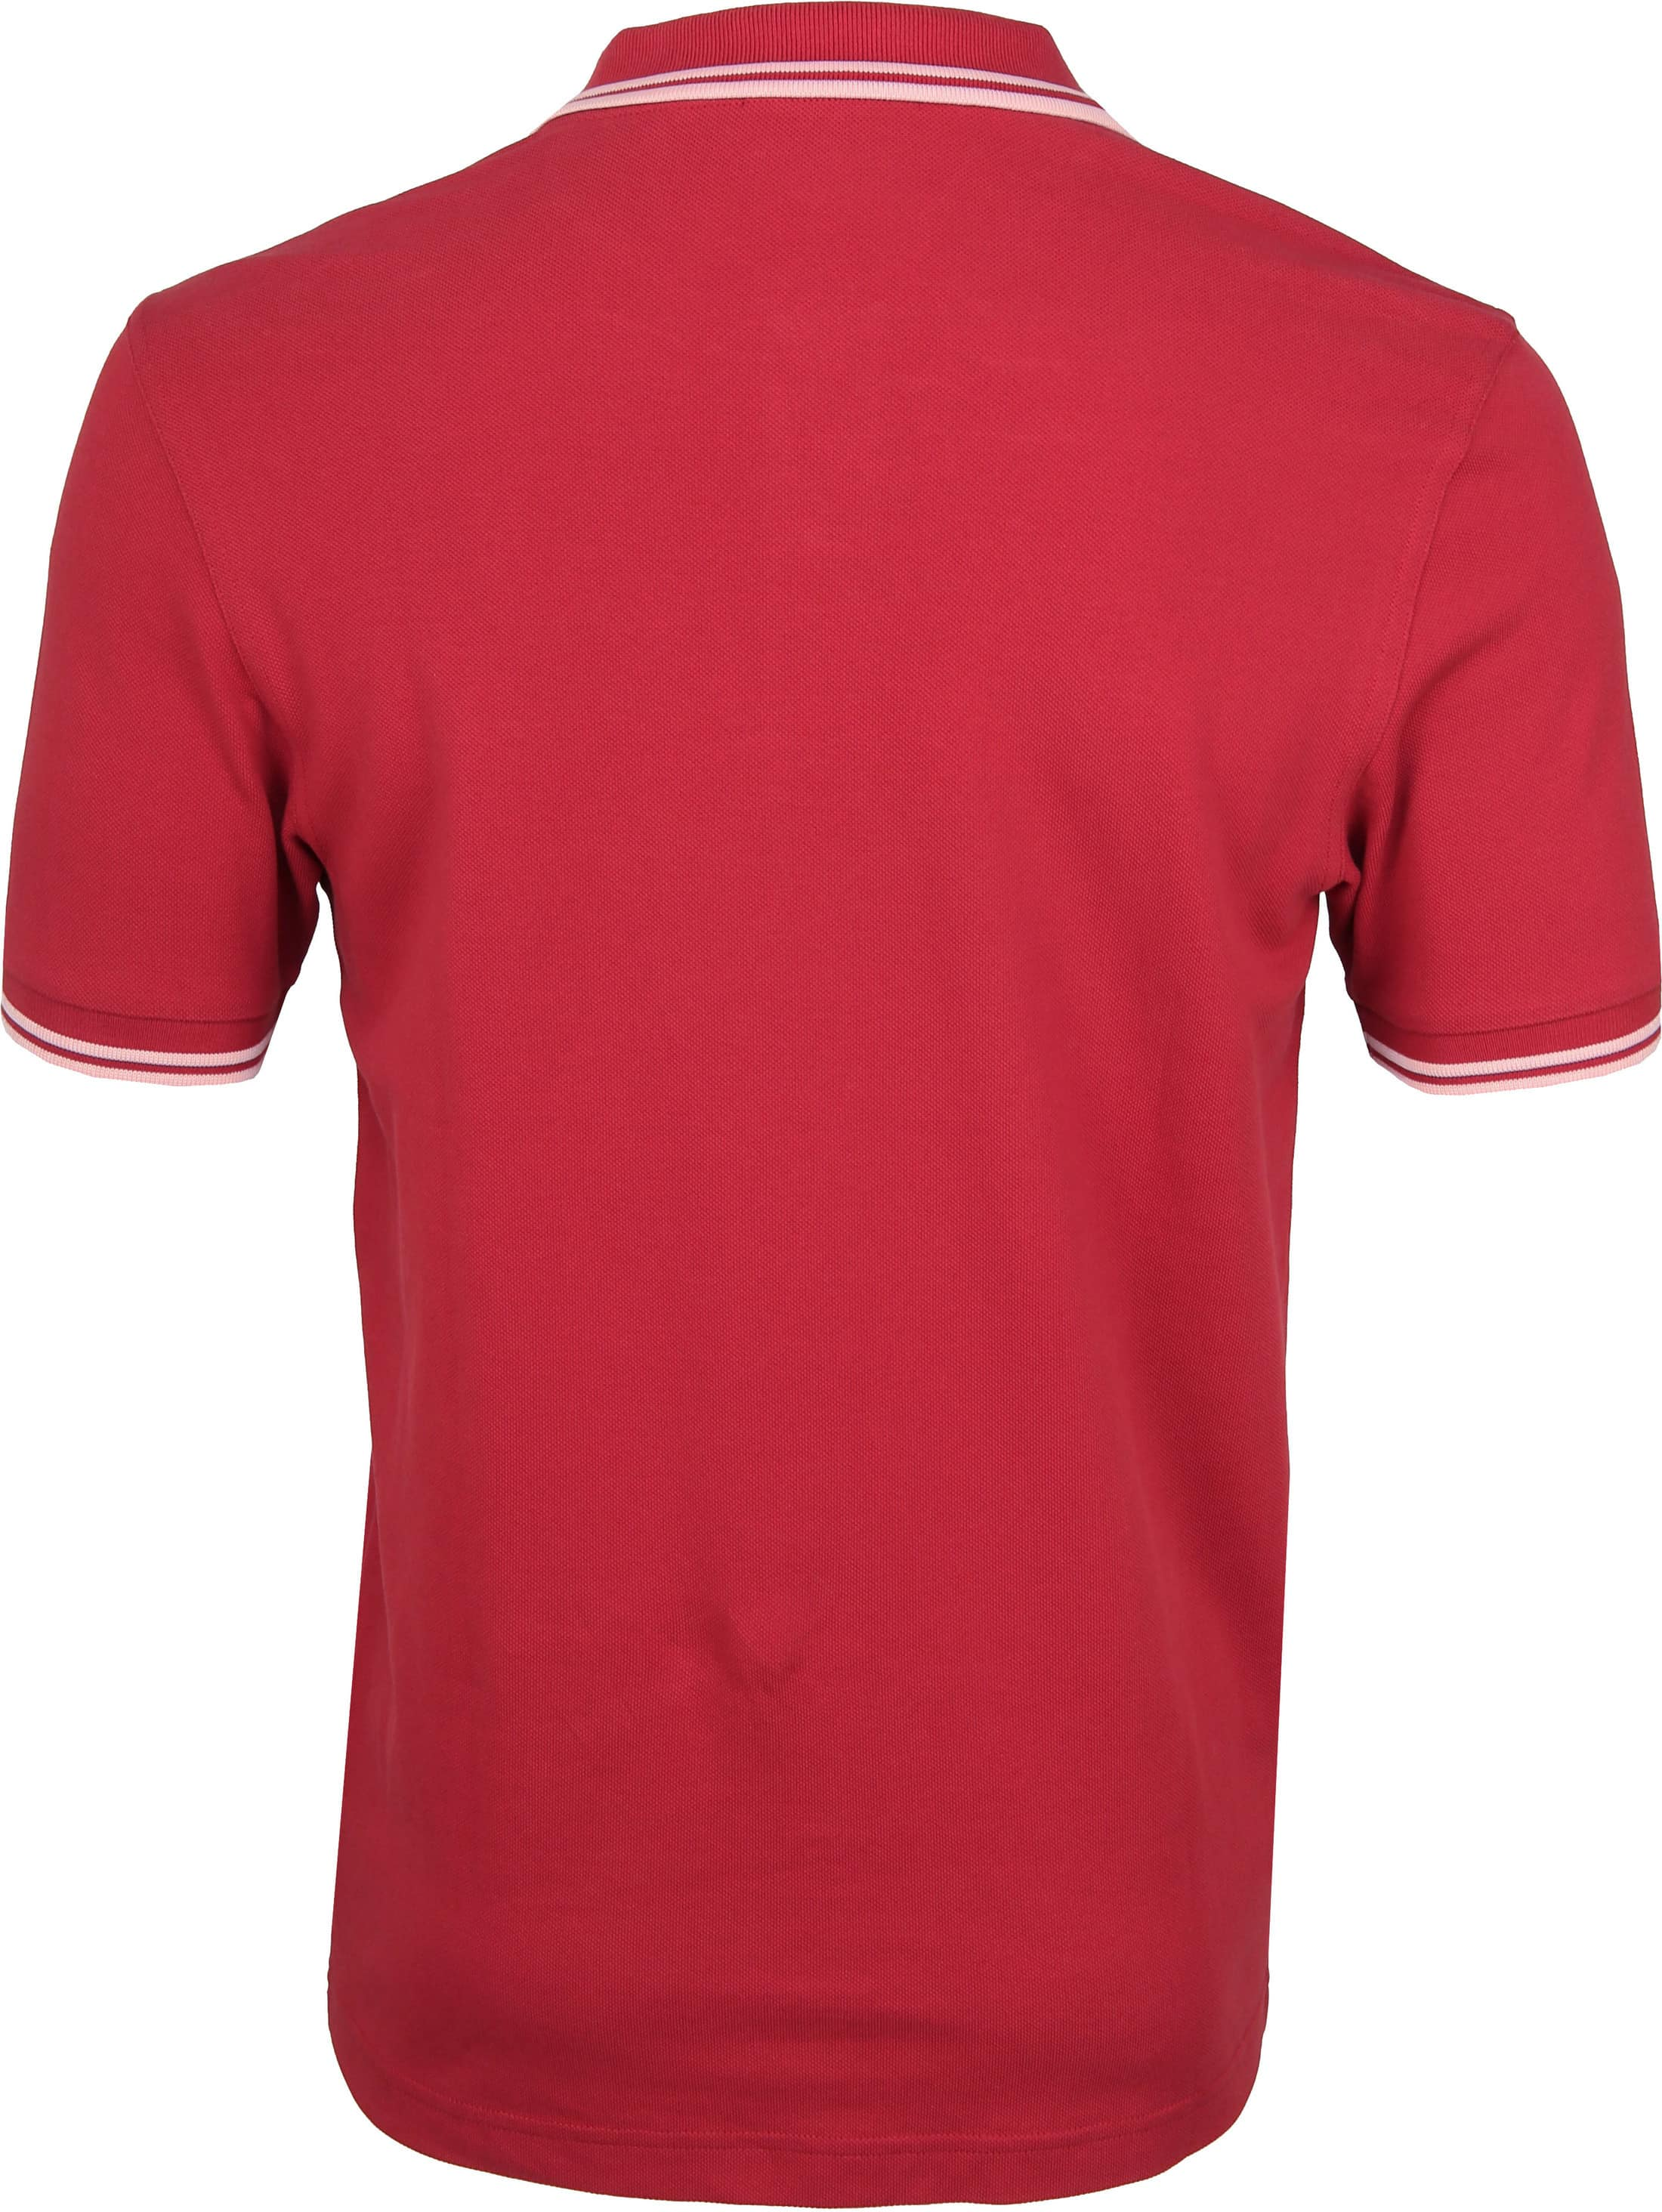 Fred Perry Poloshirt Red 541 foto 2